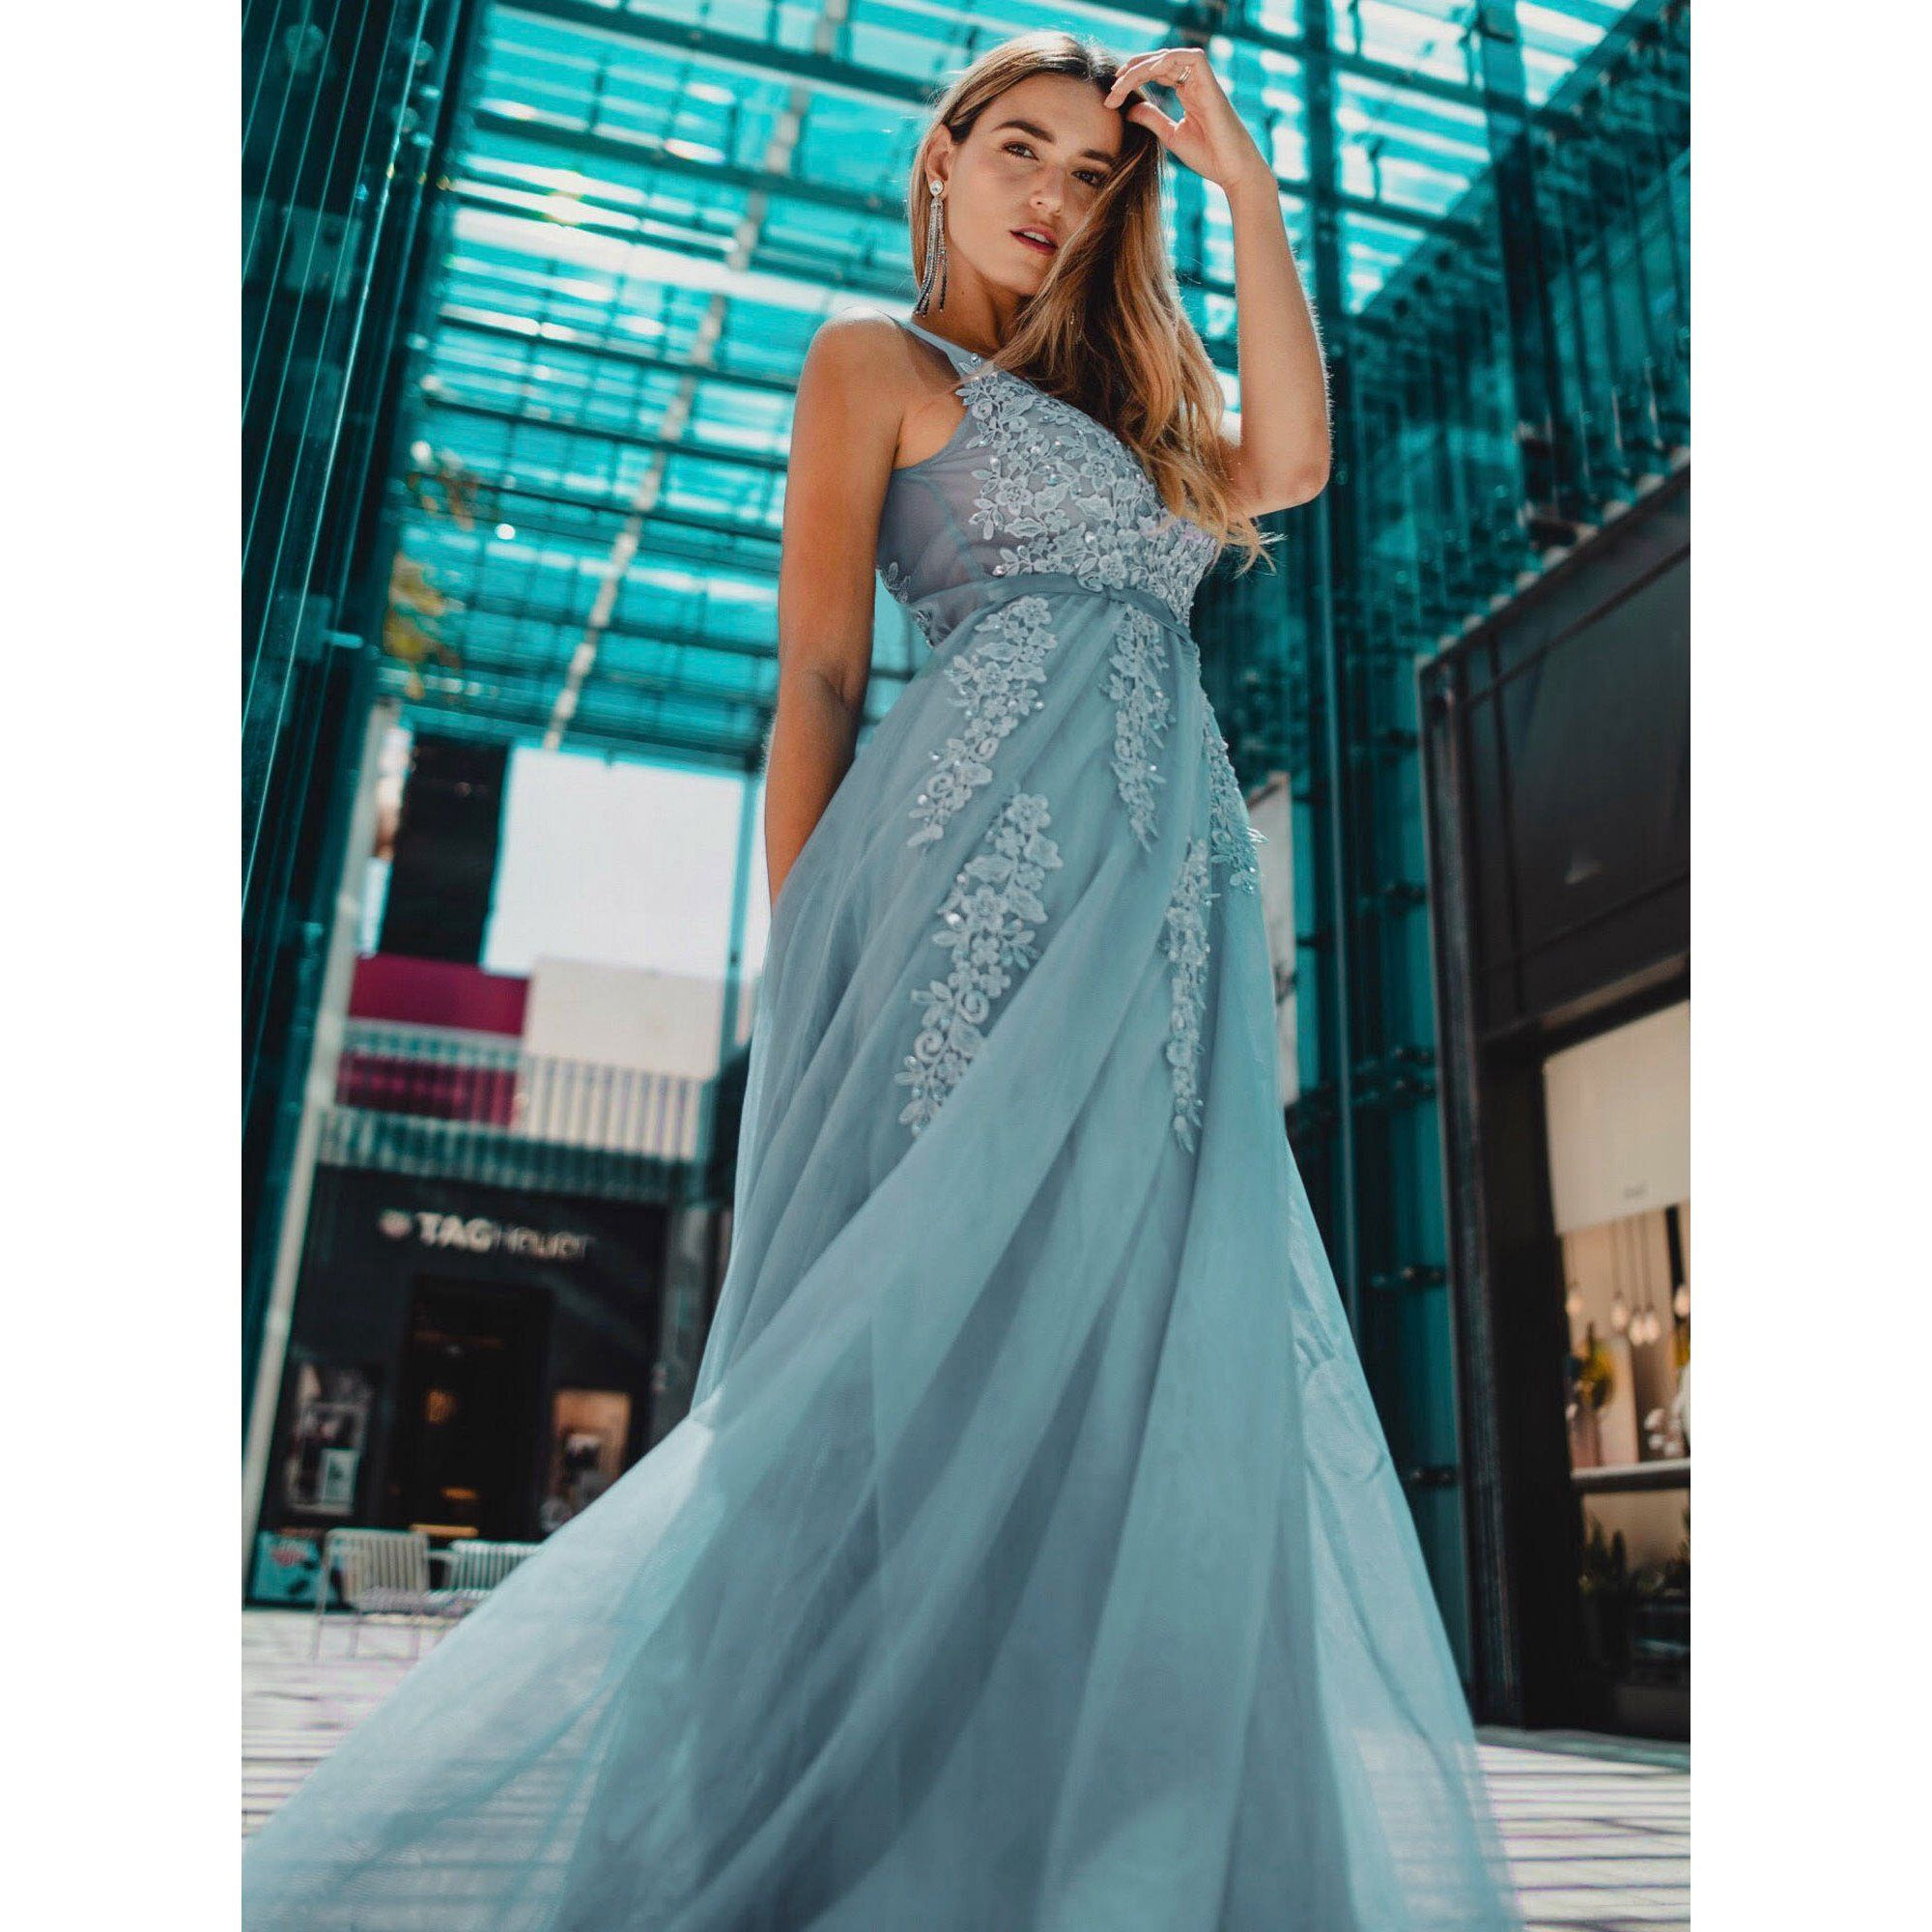 Ever Pretty Ever Pretty Womens Floral Lacey Elegant Long Formal Evening Prom Bridesmaid Dresses For Women 07544 Dusty Blue Us4 Walmart Com Bridesmaid Dresses Prom Gorgeous Prom Dresses Evening Dresses Long [ 2000 x 2000 Pixel ]